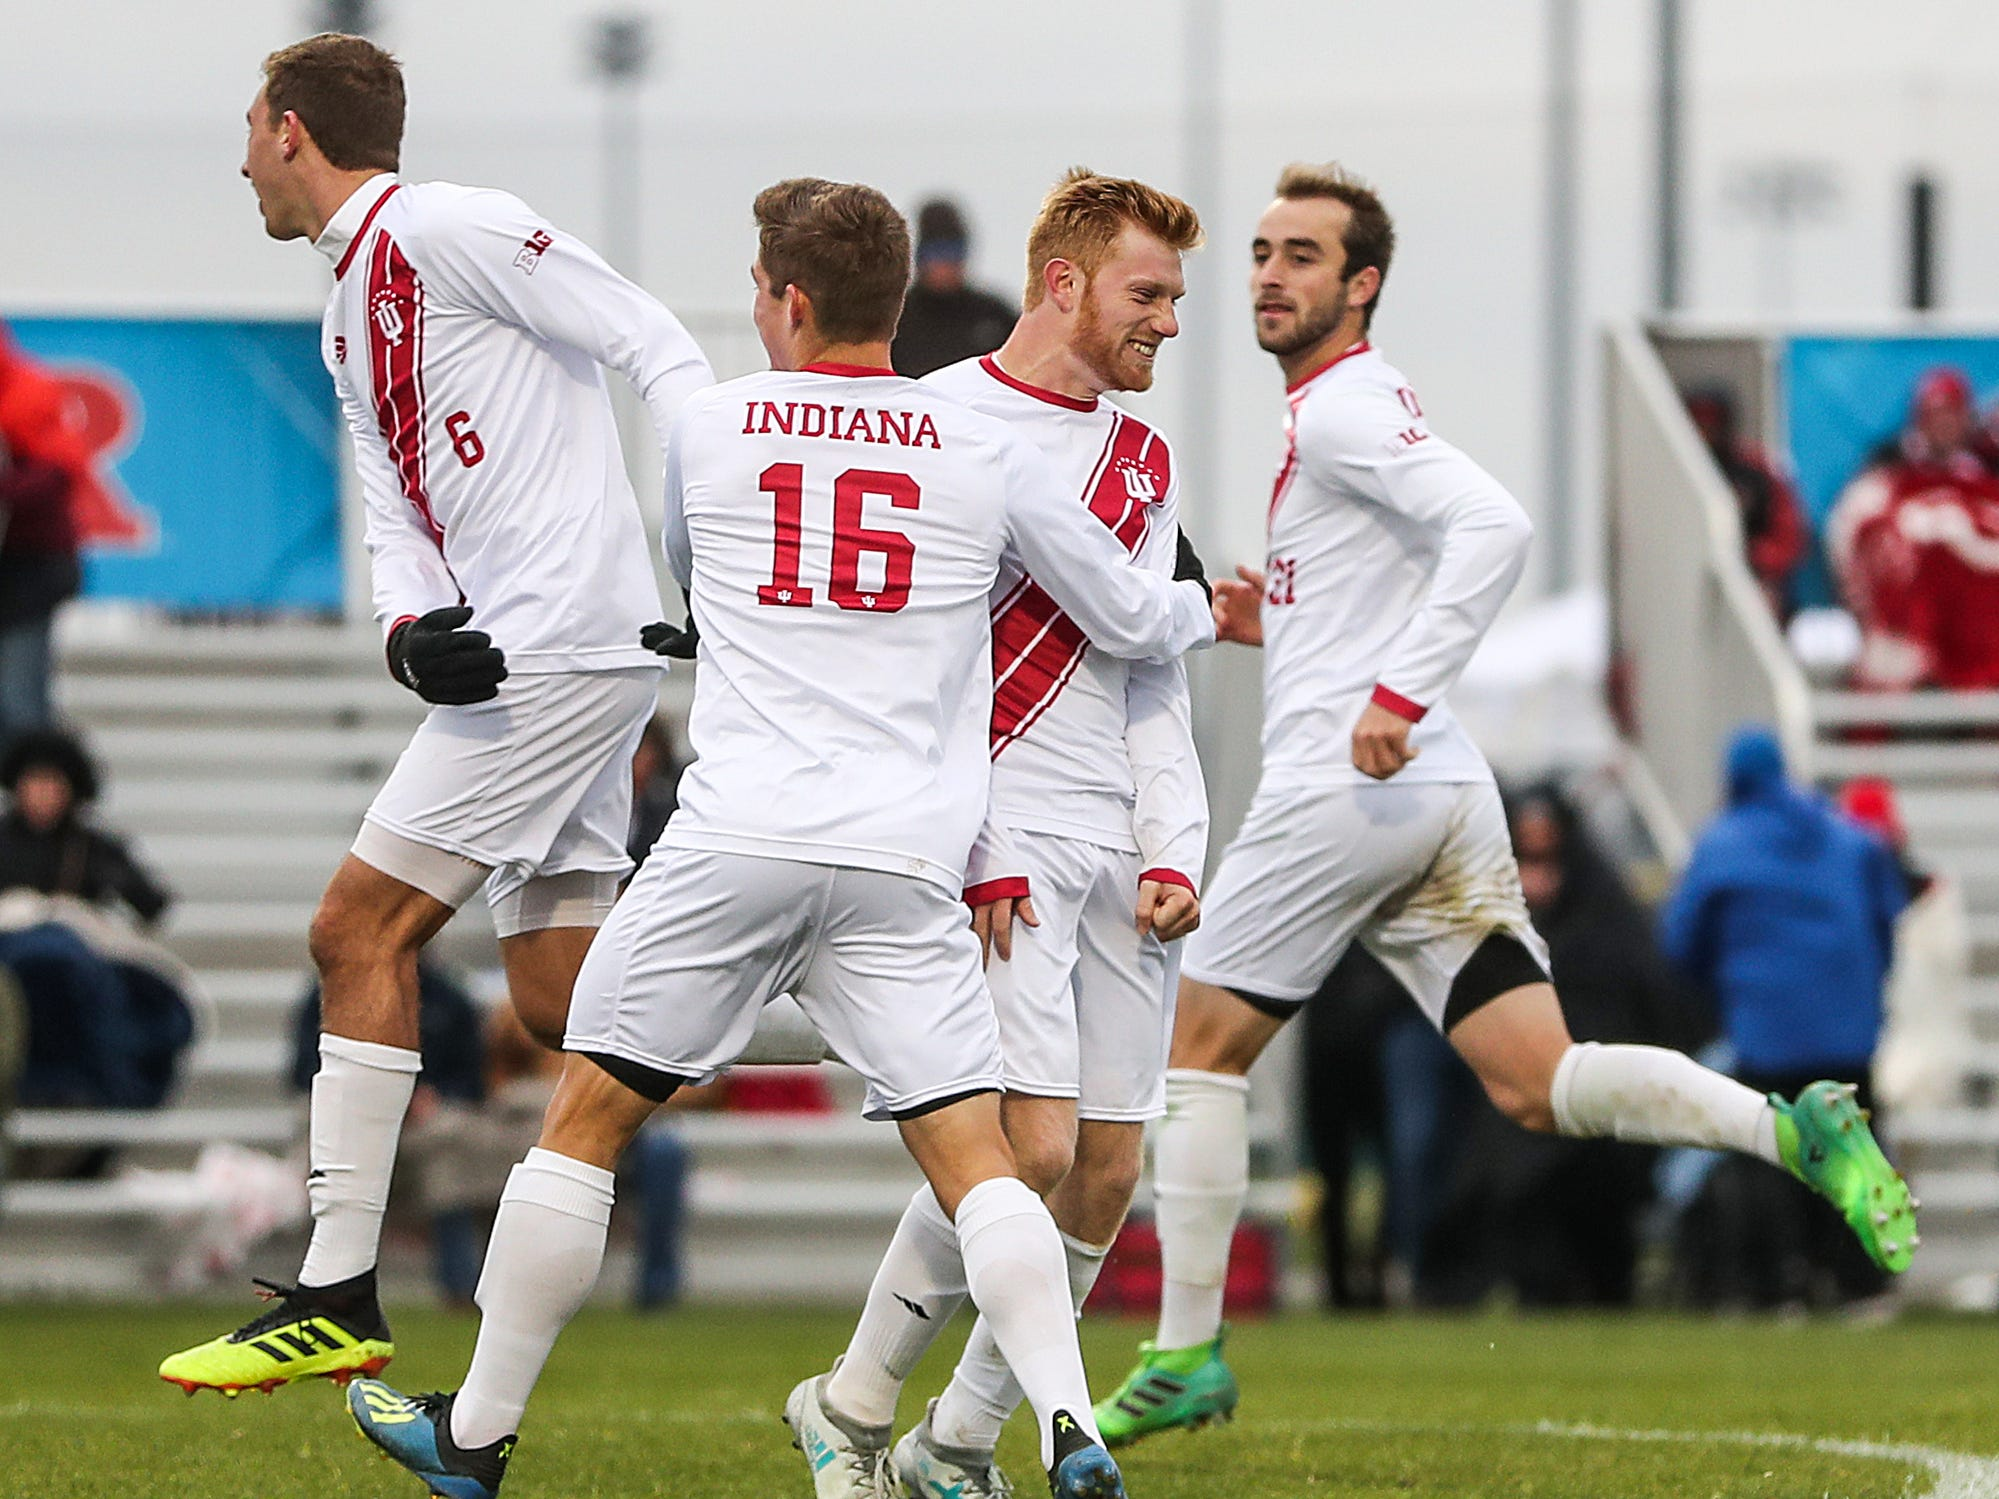 The Indiana Hoosiers celebrate defeating the Maryland Terrapins in Big Ten semifinals at Grand Park in Westfield, Ind., Friday, Nov. 9, 2018. Indiana and Maryland tied 1-1, with the Hoosiers clinching the win in penalty kicks, 4-3, with a goal by Indiana Hoosiers Cory Thomas (11), pictured second from right.